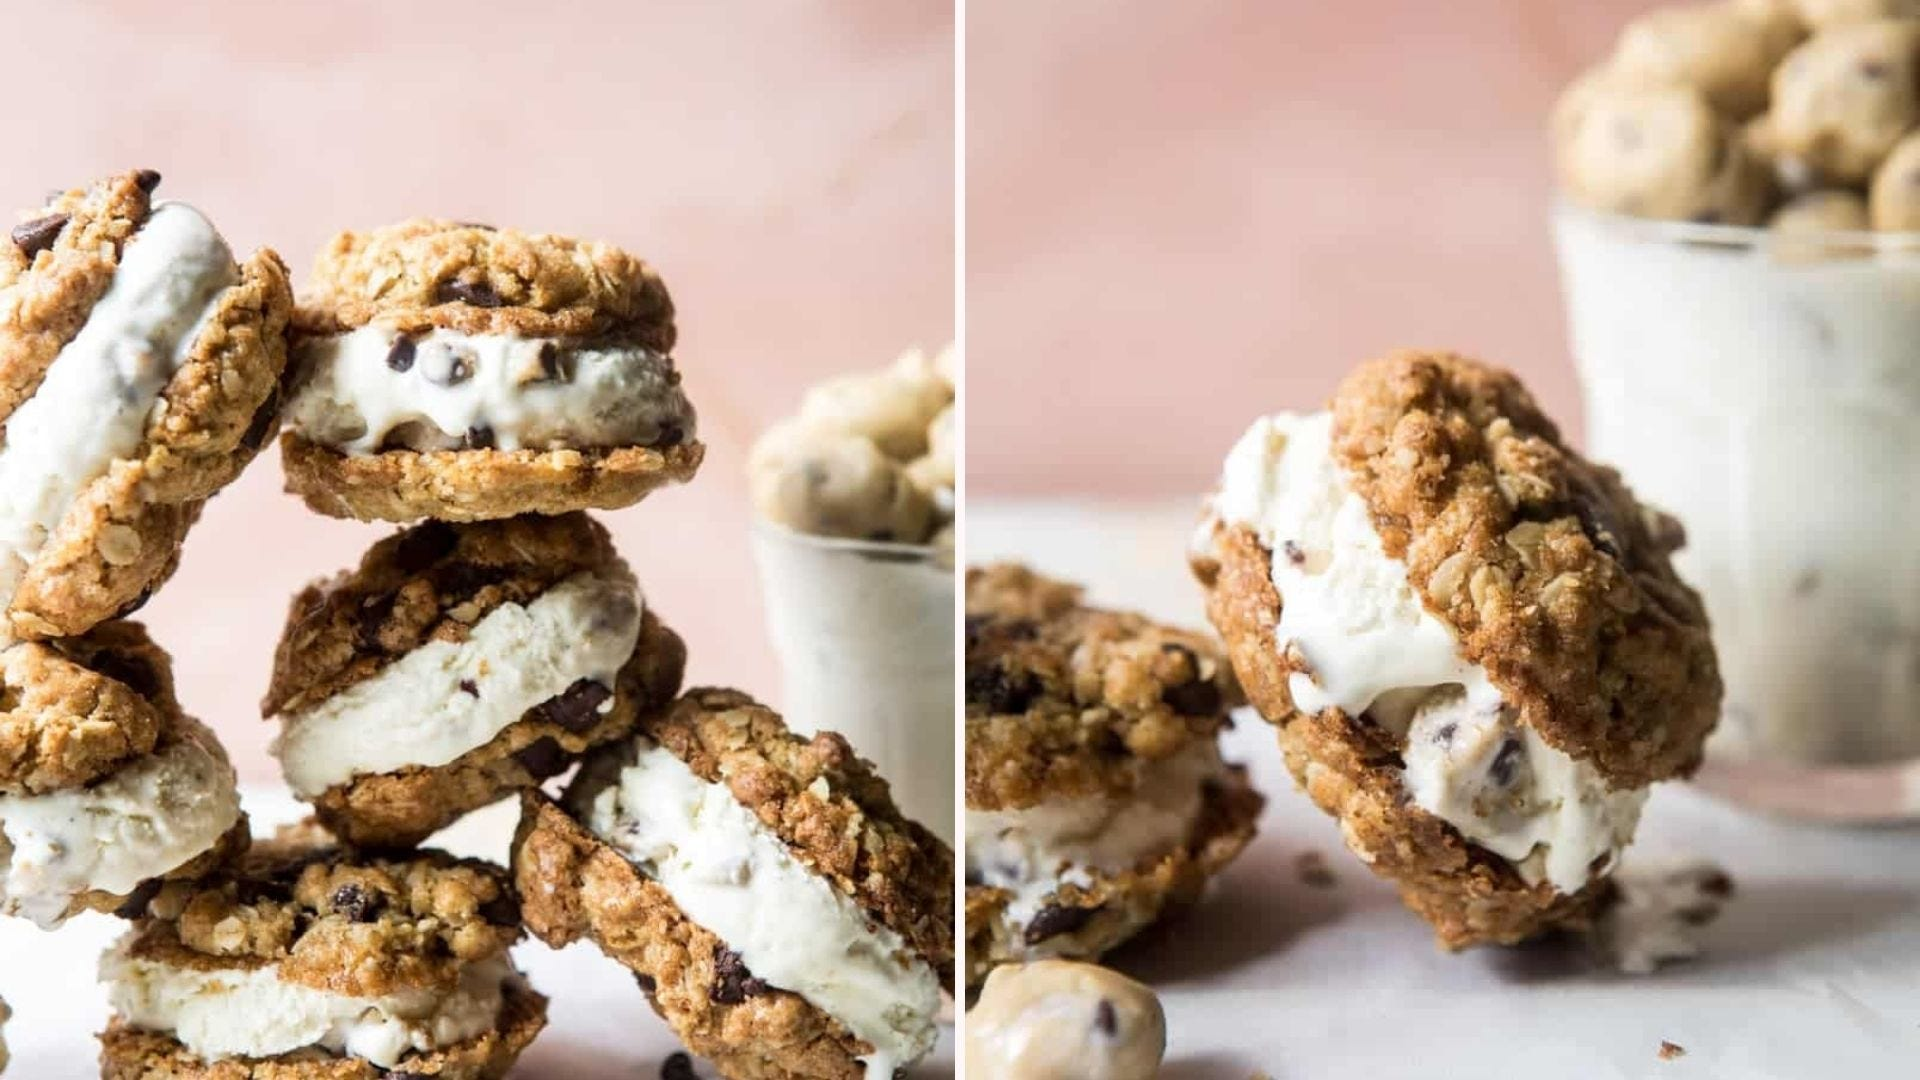 Stacks of oatmeal chocolate chip ice cream sandwiches